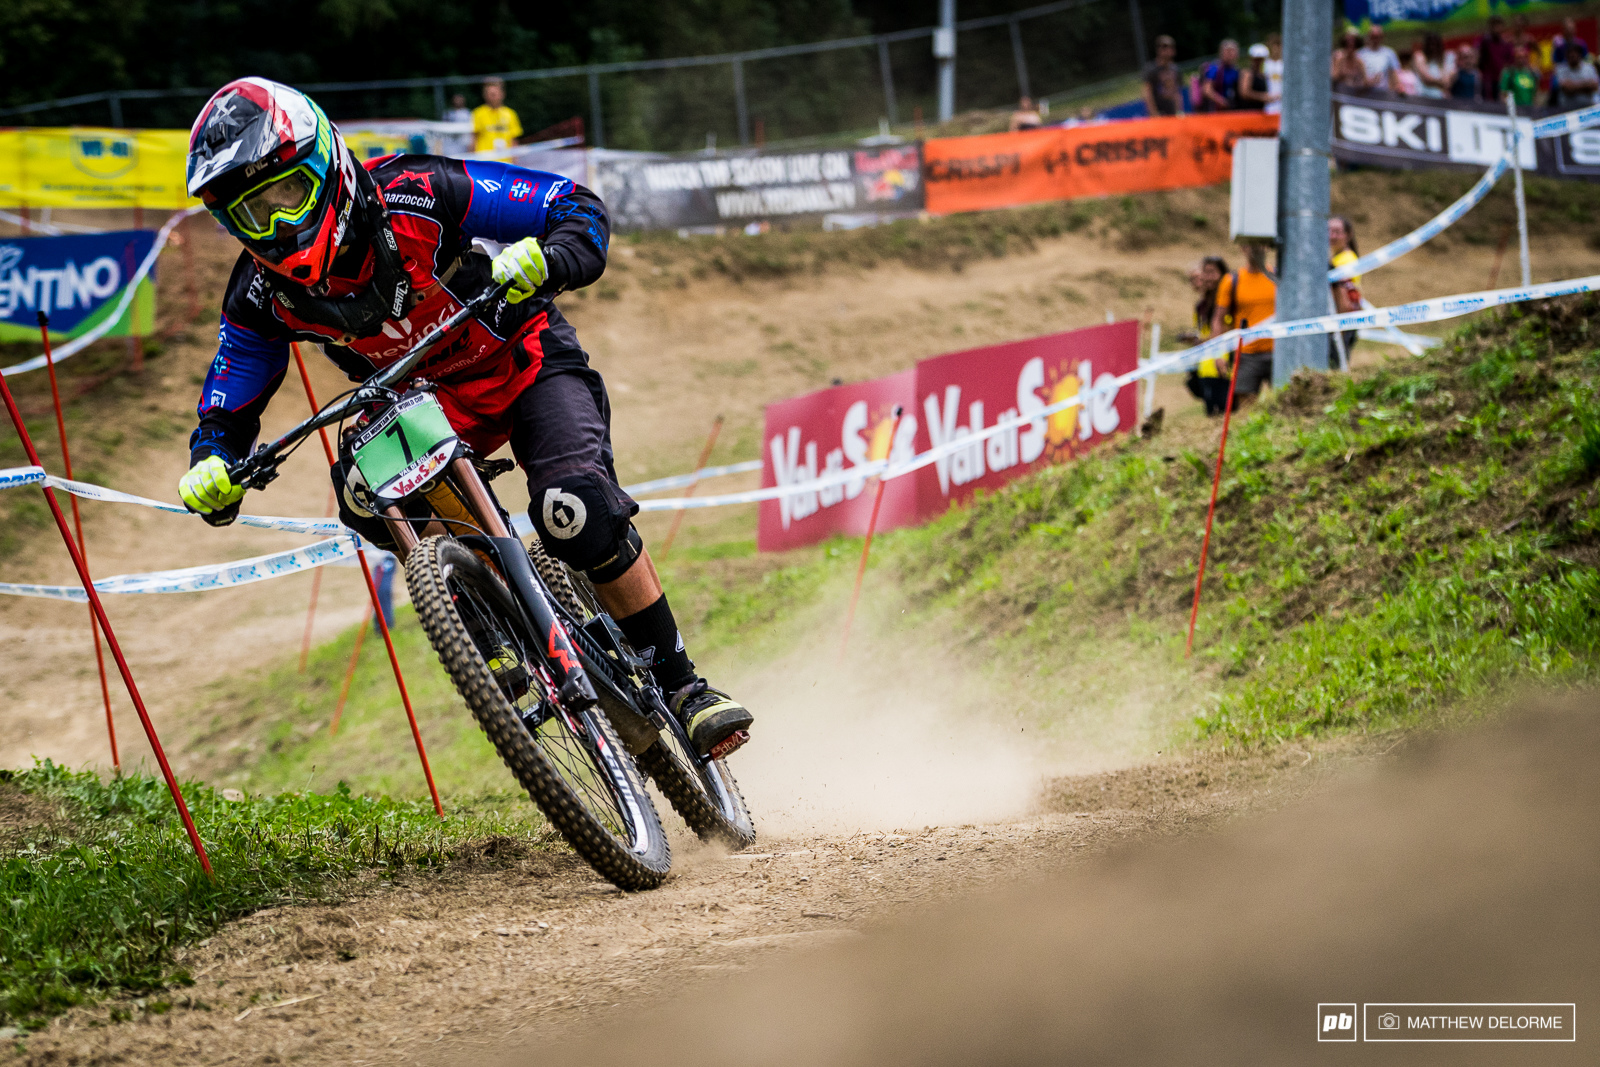 Loris Revelli brought home the win for his country in the juniors today. The Italian was a second and change up on second place Dickson.